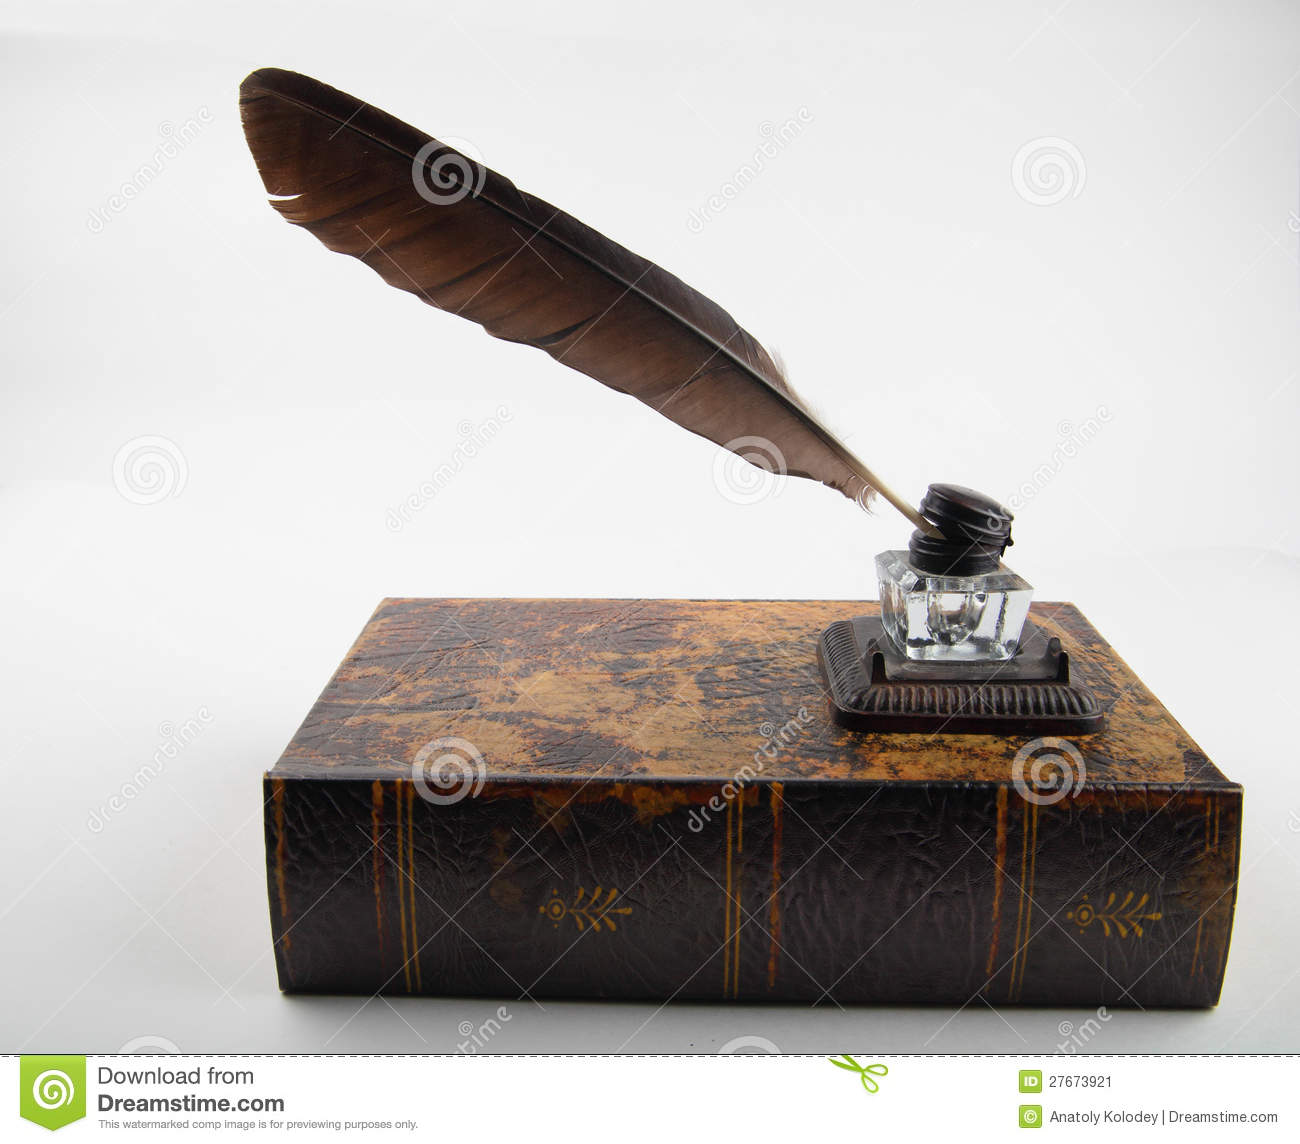 Ancient Ink Pot With Quill On Old Tome Stock Image - Image ... Quill And Ink Pot